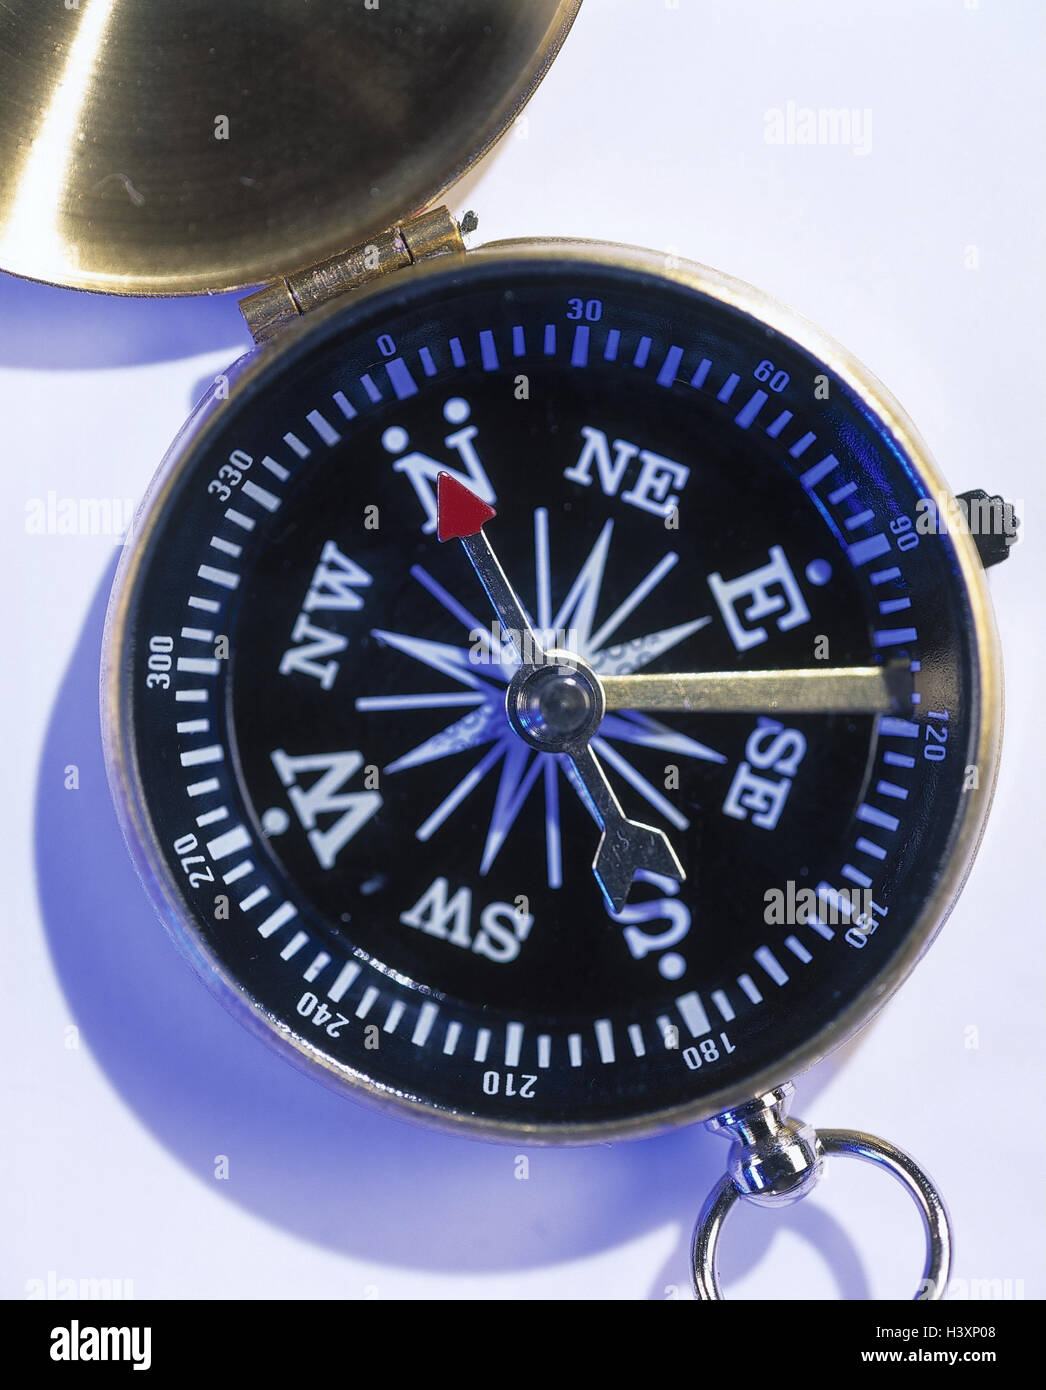 Compass, detail, navigation, orientation, guidance, signpost, heaven directions, measuring instrument, location - Stock Image